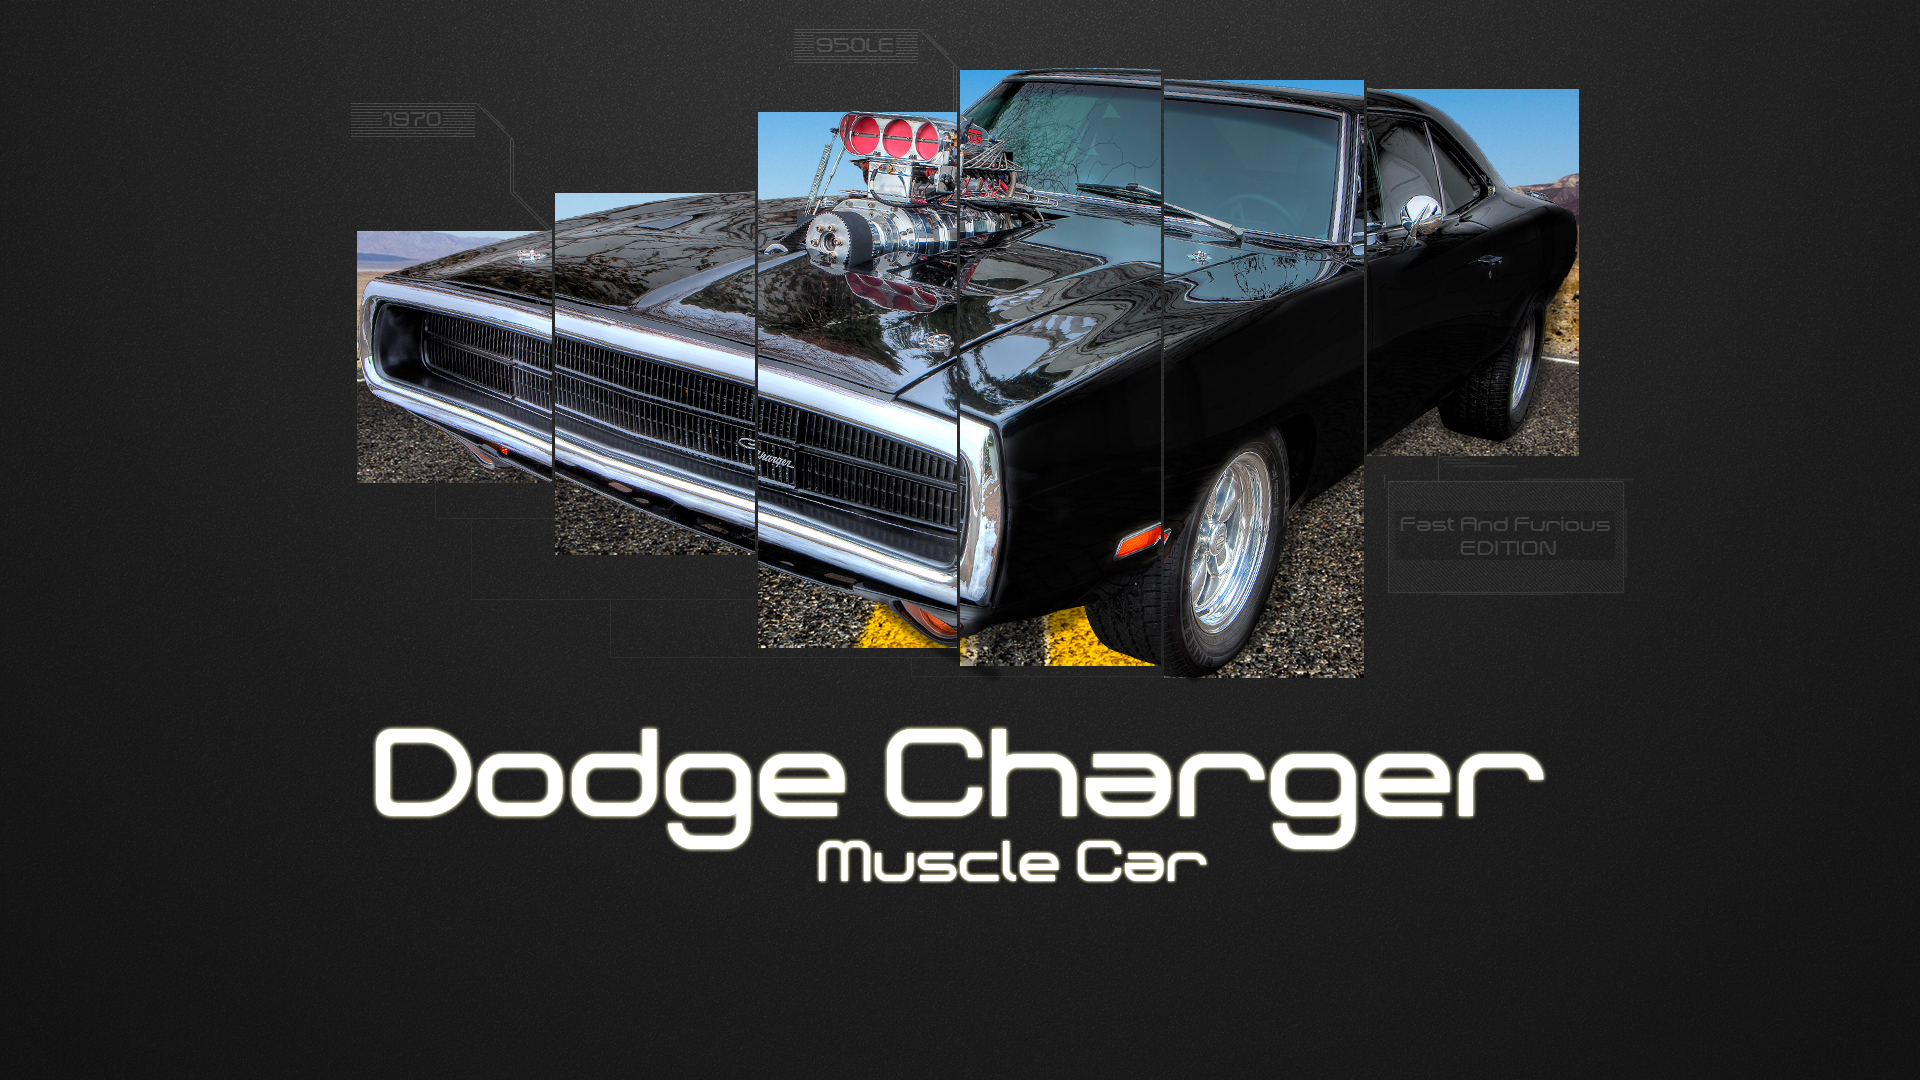 Fast and Furious Dodge Charger